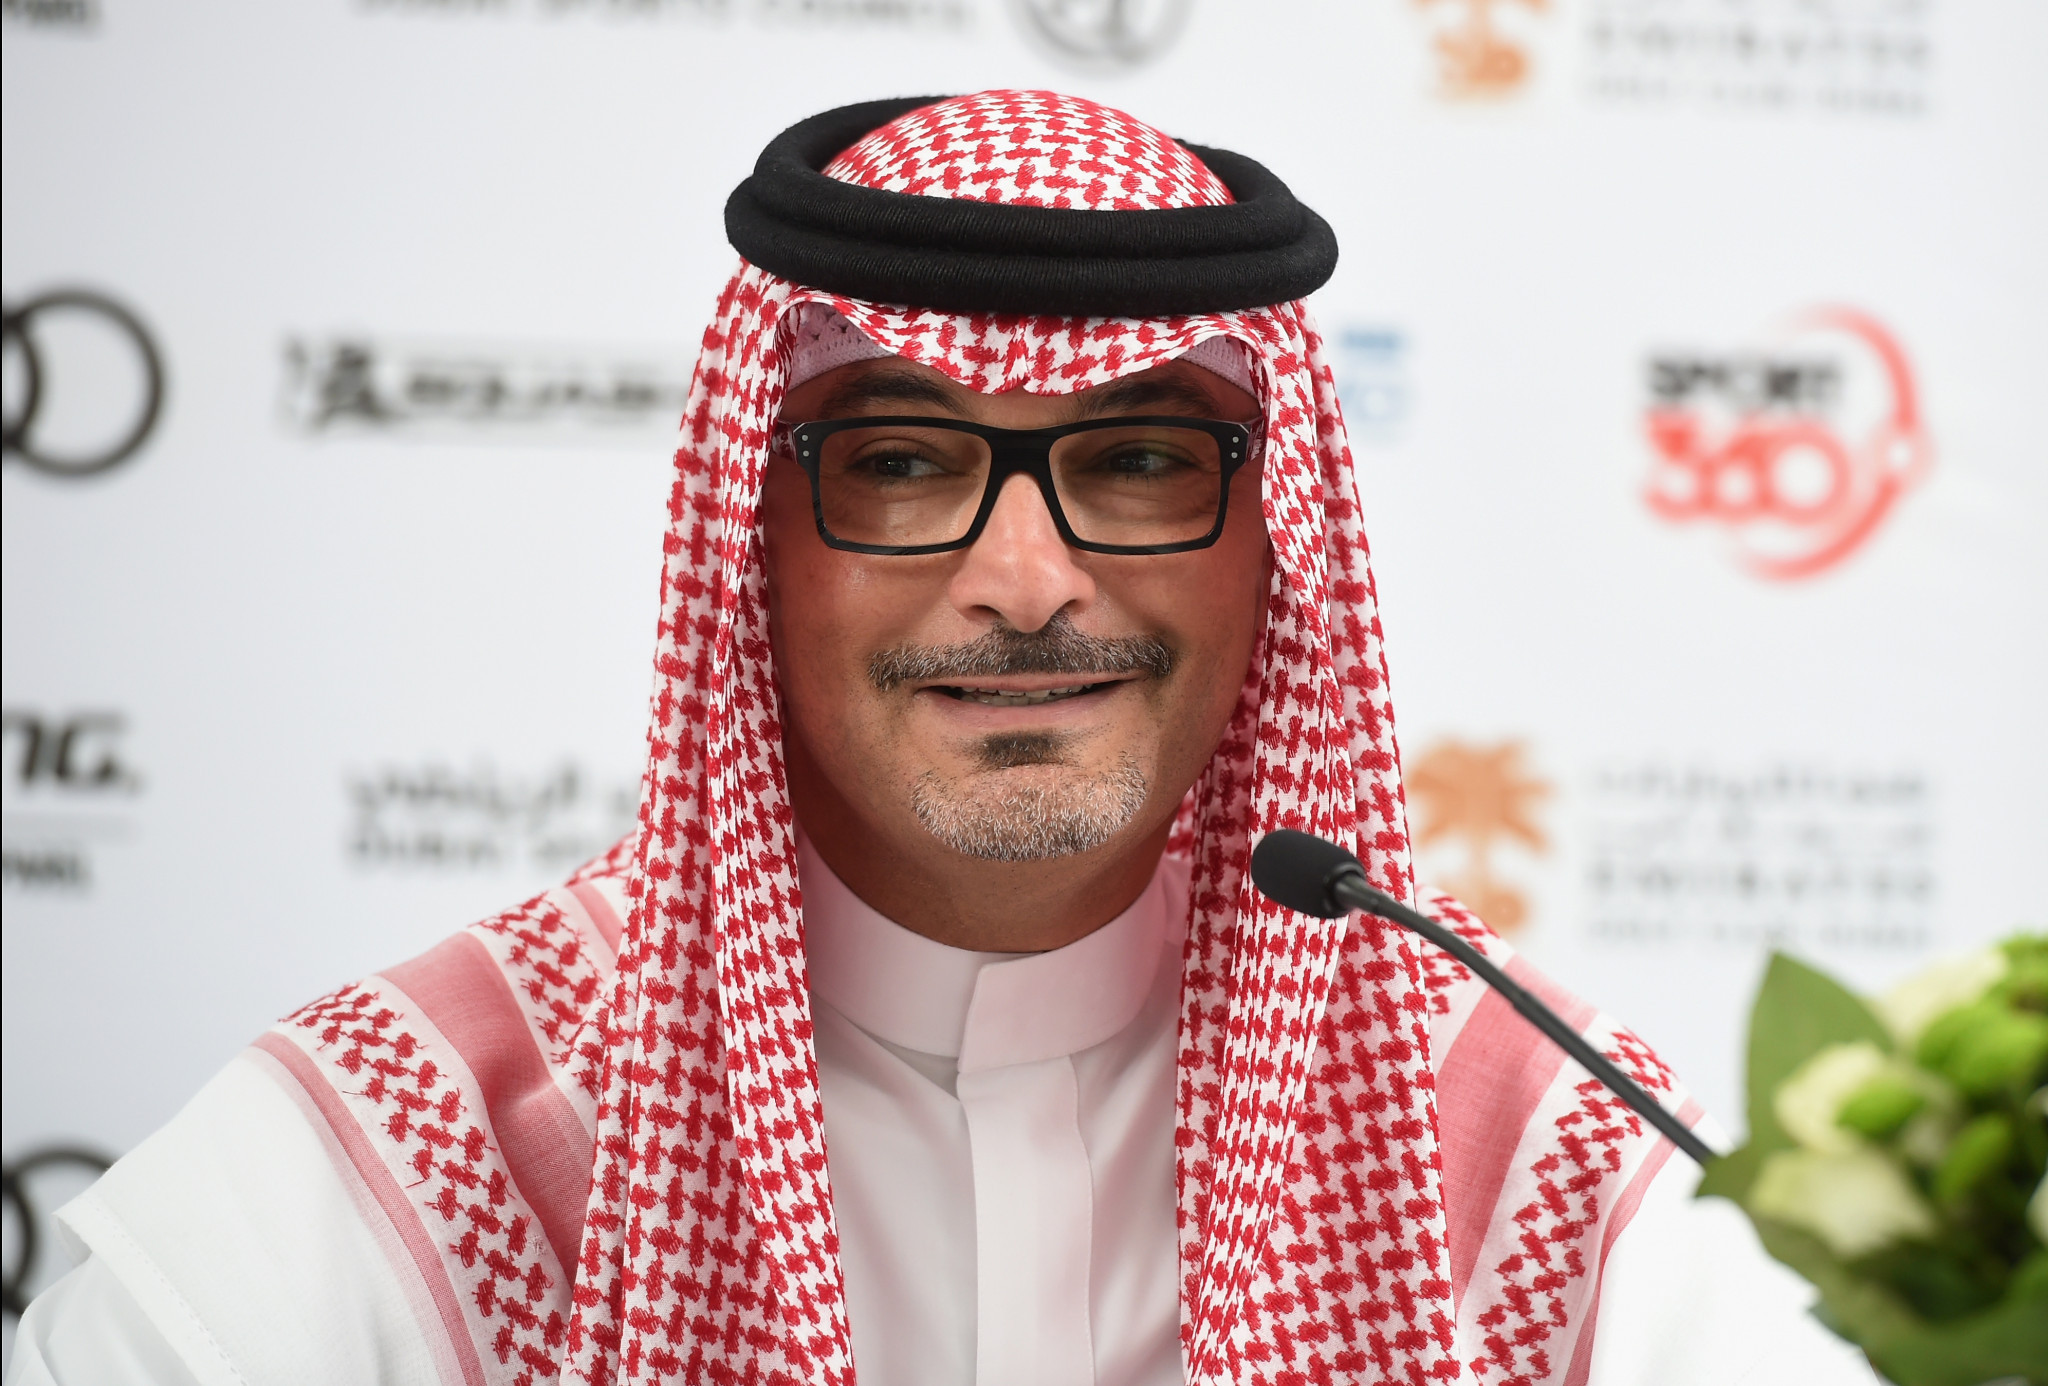 PSA chairman Al-Turki appointed to Saudi Arabian Olympic Committee